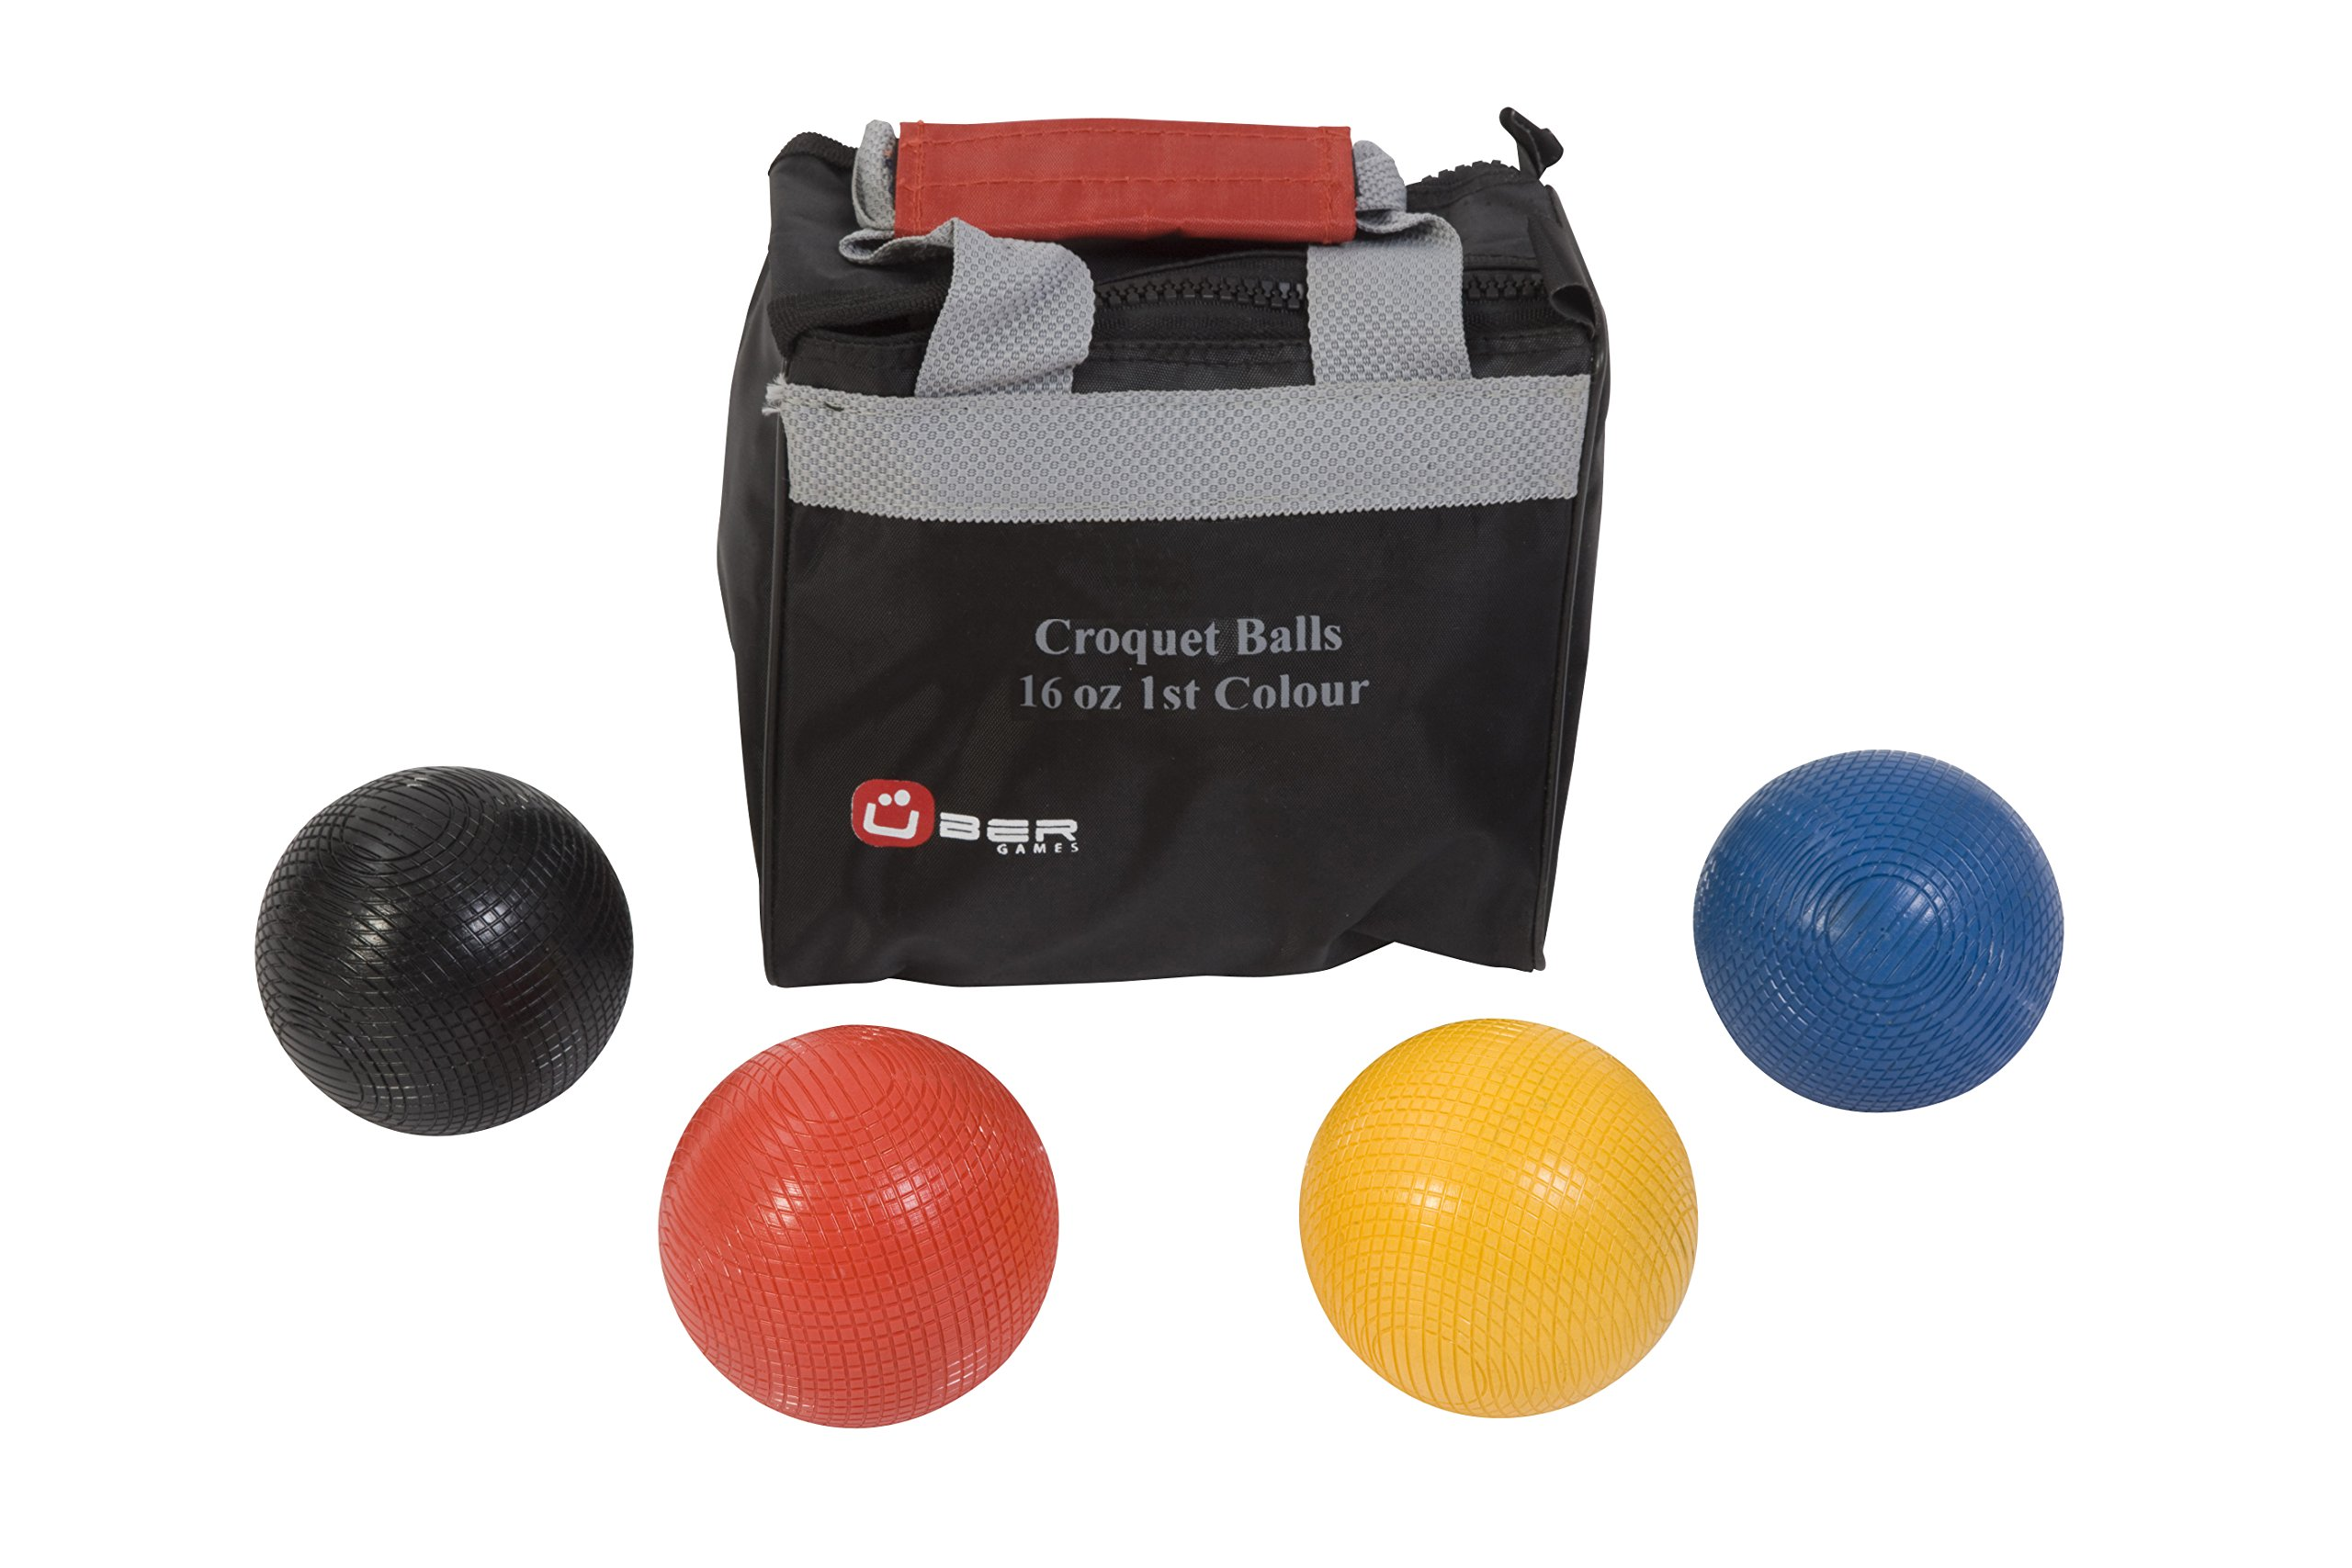 Uber Games Composite Croquet Ball Set - 1st Color - 16oz by Uber Games